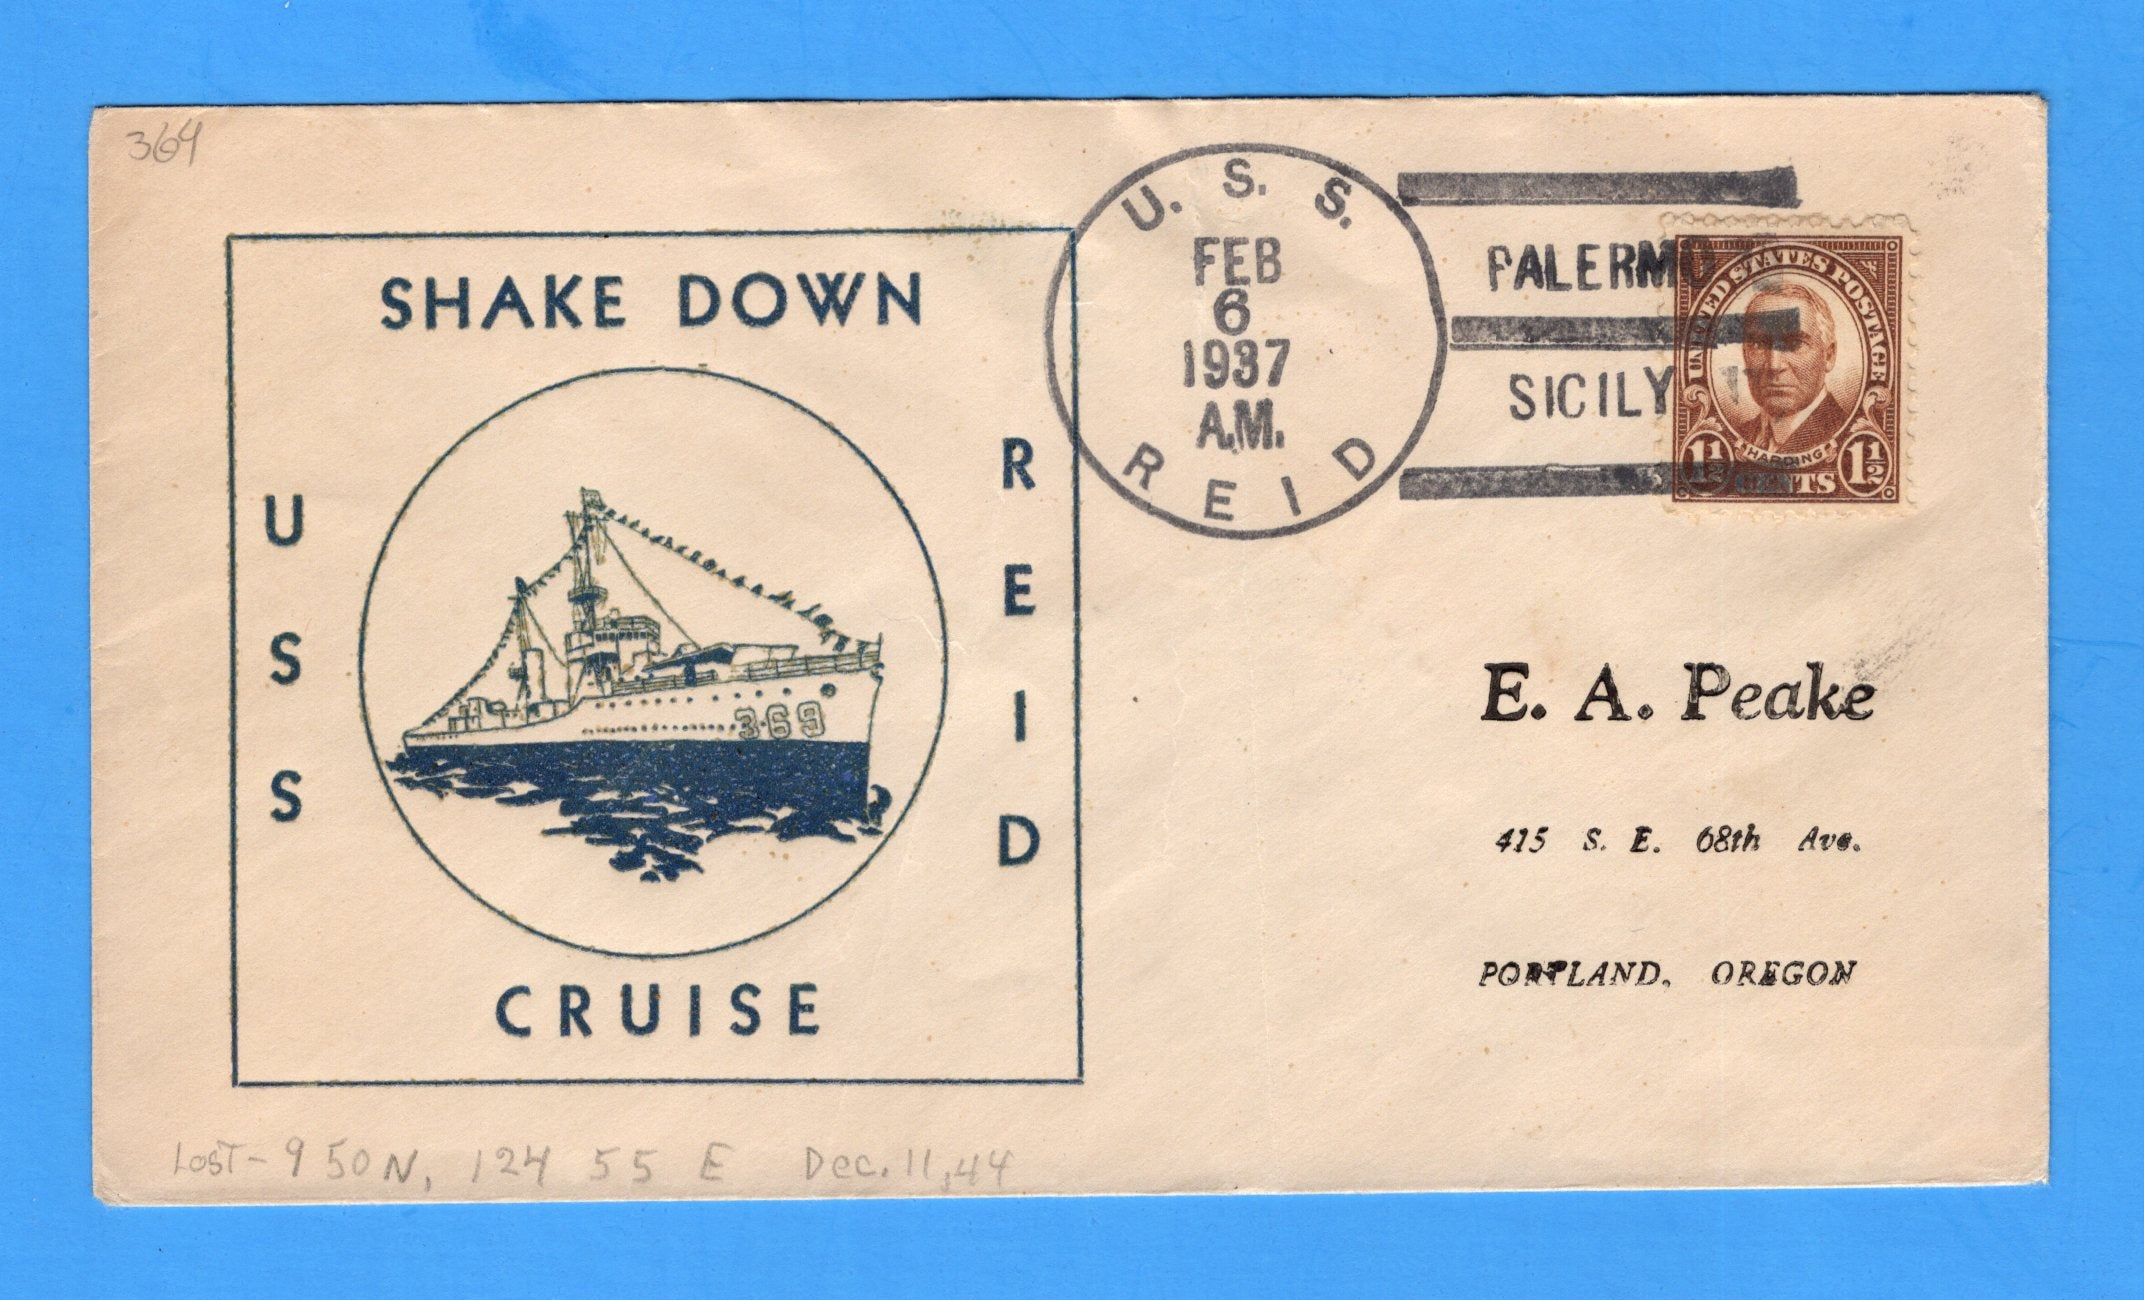 USS Reid DD-369 (Sunk by kamikazes, 11 December 1944) Shakedown Cruise Palermo, Italy February 6, 1937 - Raised Print Cachet